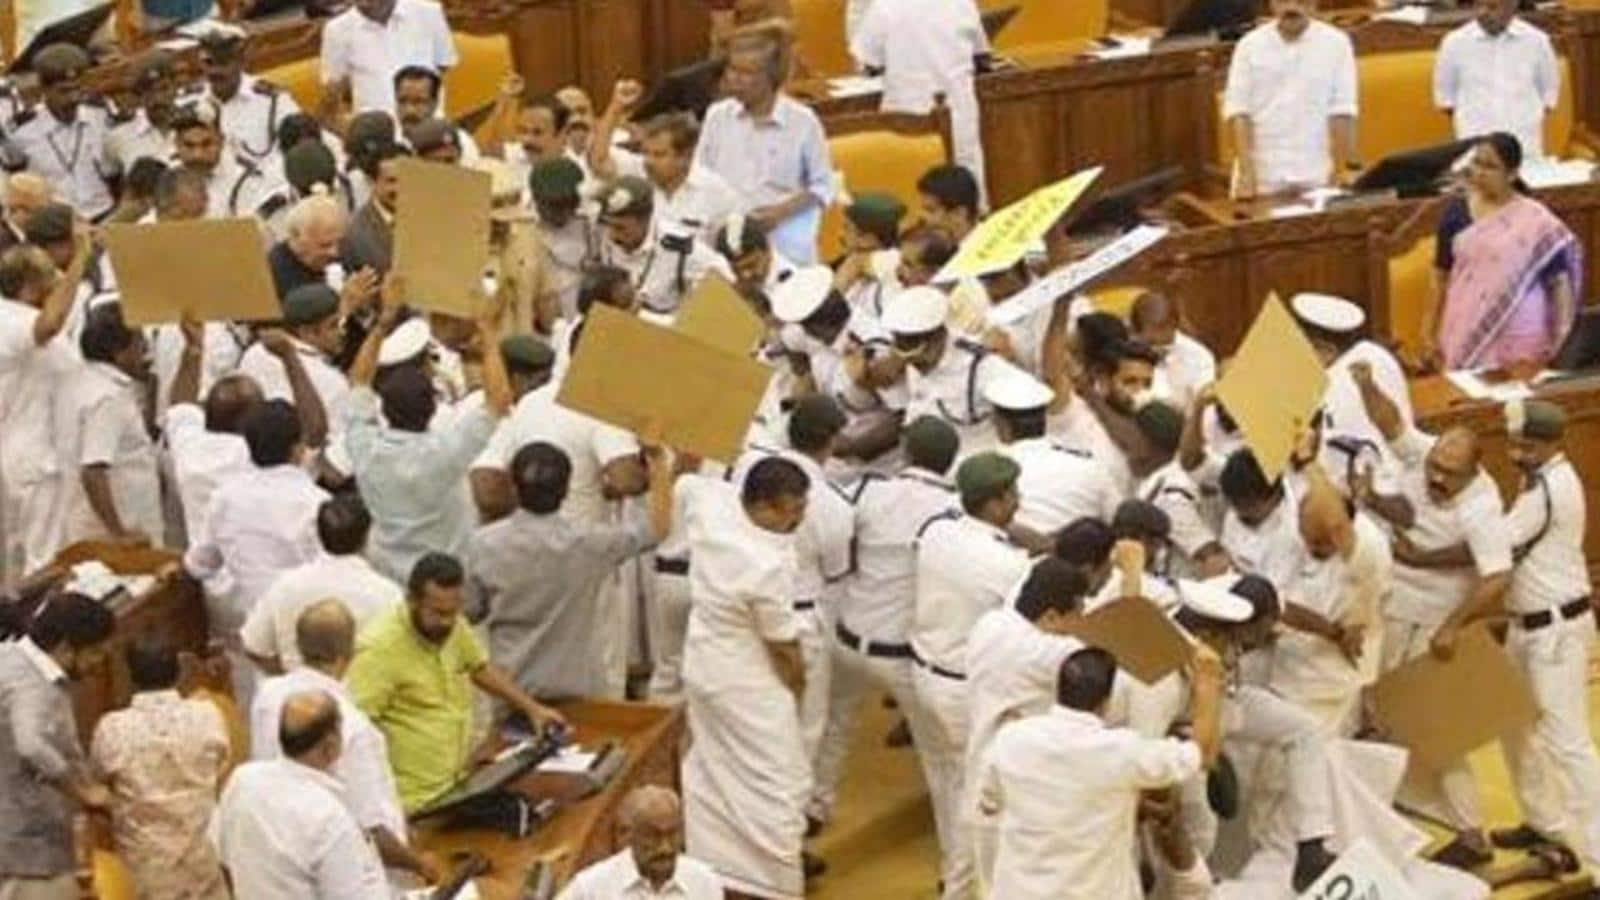 Court rejects discharge plea of minister among 6 in 2015 Kerala assembly violence case